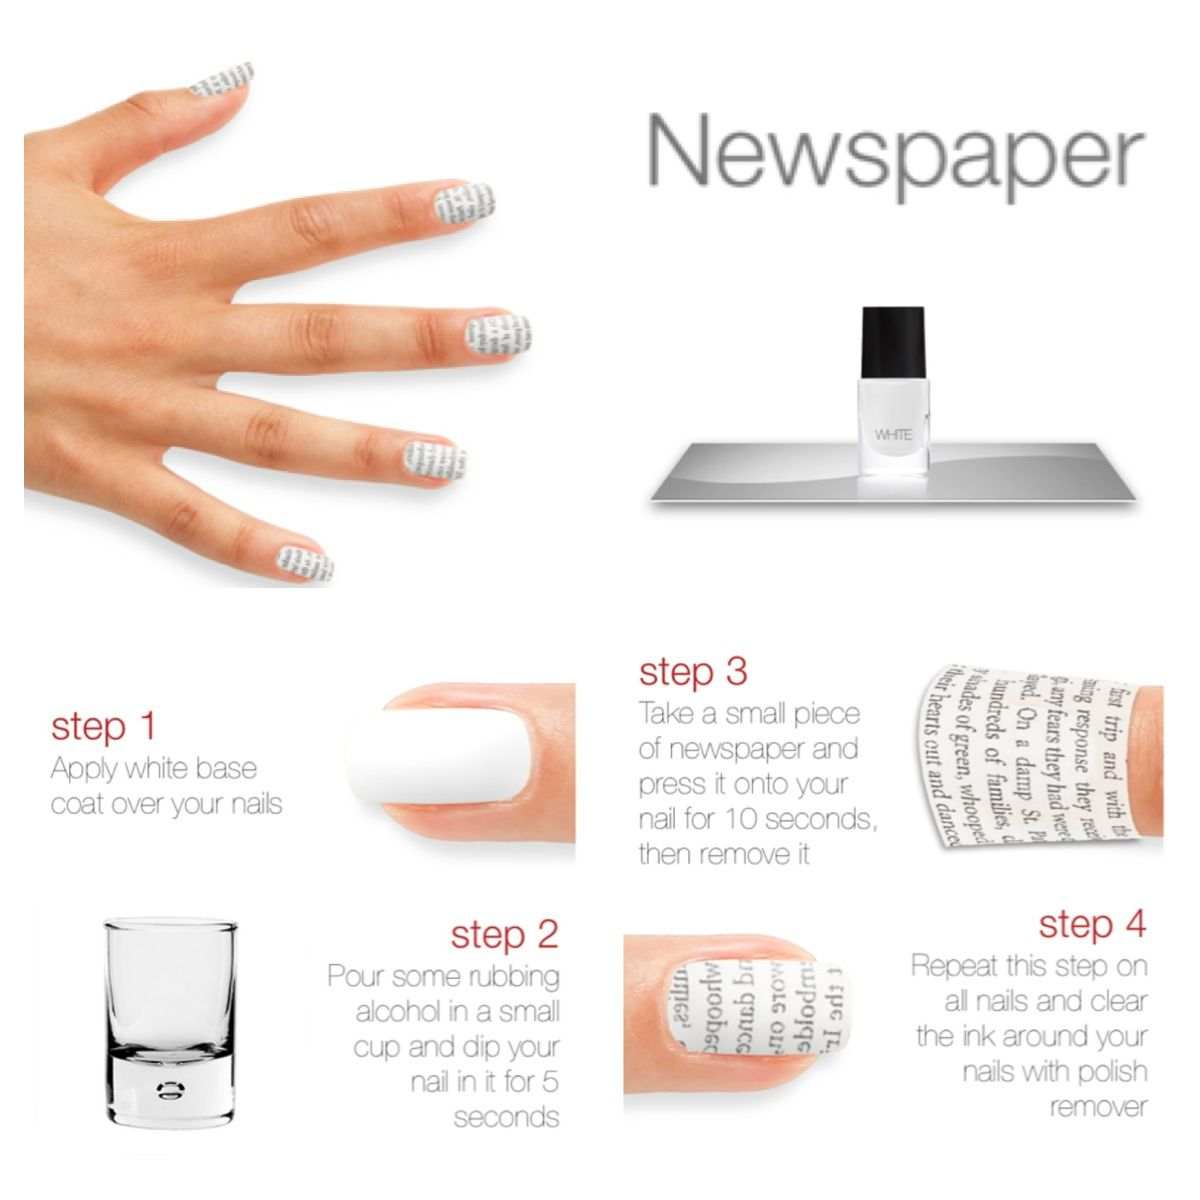 Nail Art Ideas » Nail Art Newspaper Without Alcohol - Pictures of ...